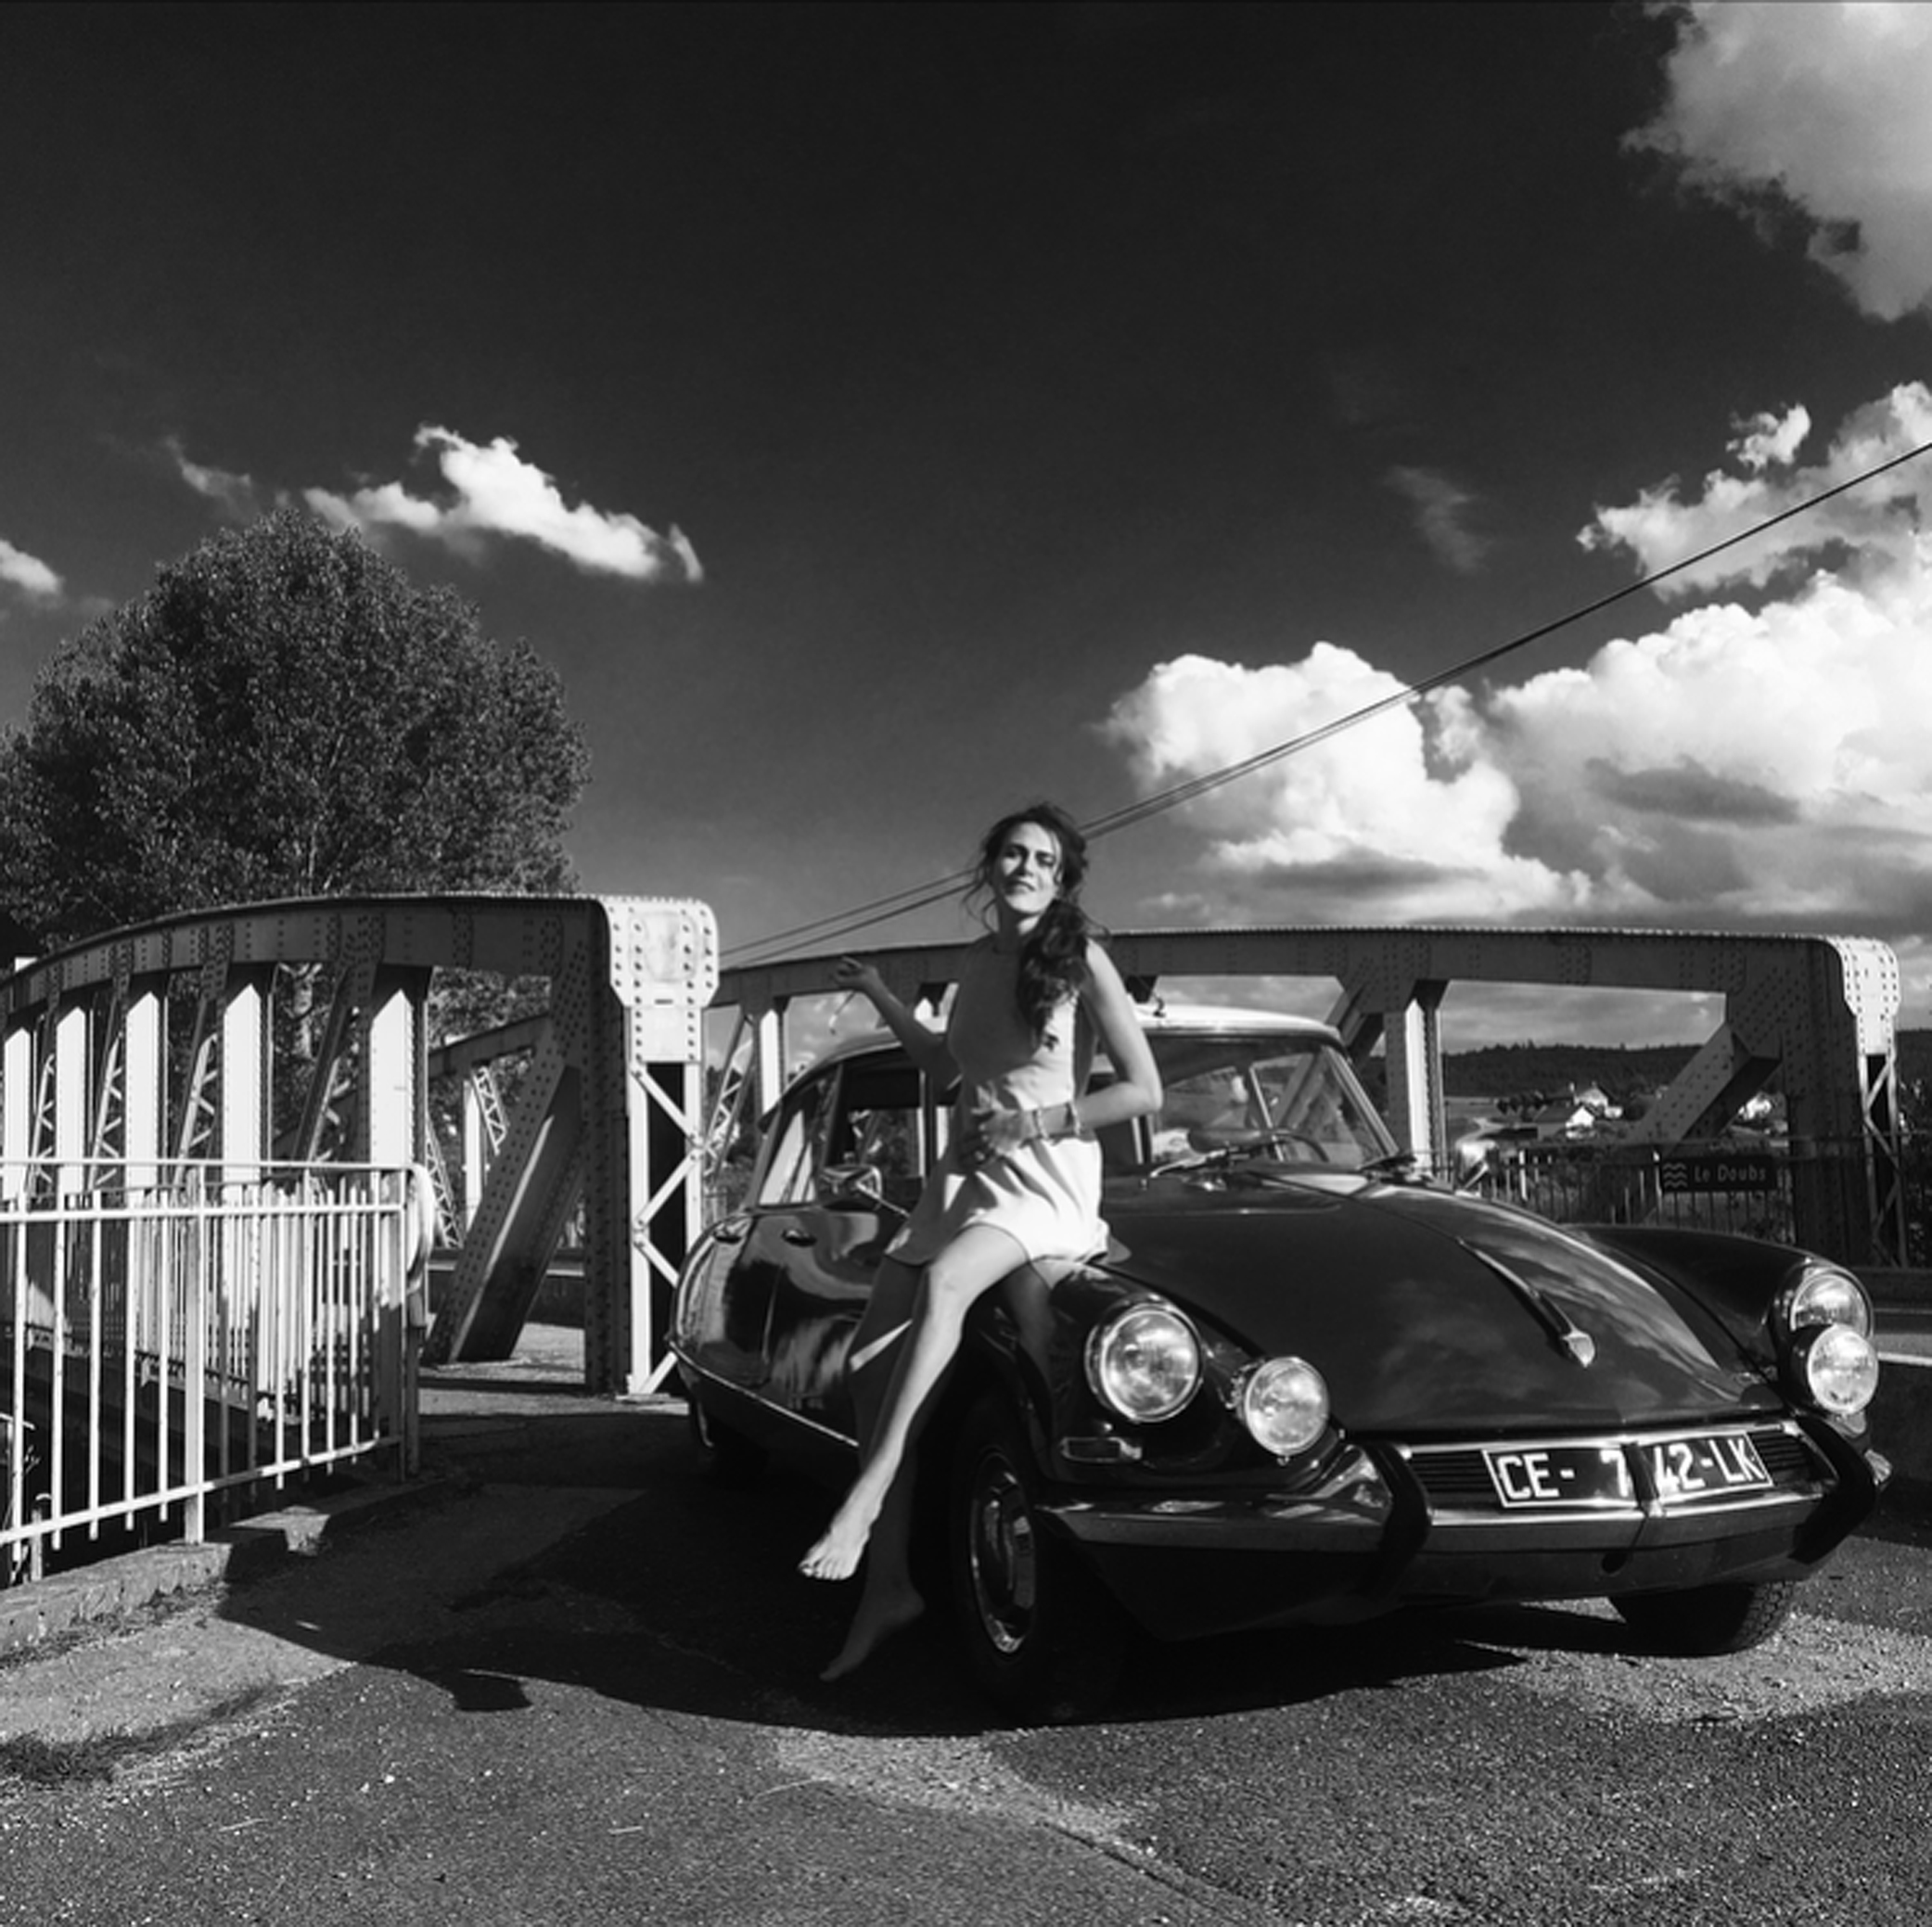 """60's babies - The story between Marie-Mobile and I started when I decided to adopt her in Deauville. Our first road-trip together was magic, we crossed France from west to east in three days, using the national roads and going through the French countryside. In my family, we already have an old Jaguar & 4CV so I had something else in mind and was glad to find her... I've always believed that design in the 60s is creative, innovative and free-minded. In 1960, fashion took power and Cardin, Courrèges, Peter Knapp are the kings: a fascinating bubbling artistic life which inspired me a lot. Likewise, the DS mesmerised me, so I got myself the ultimate """"à la Française"""" French car!"""